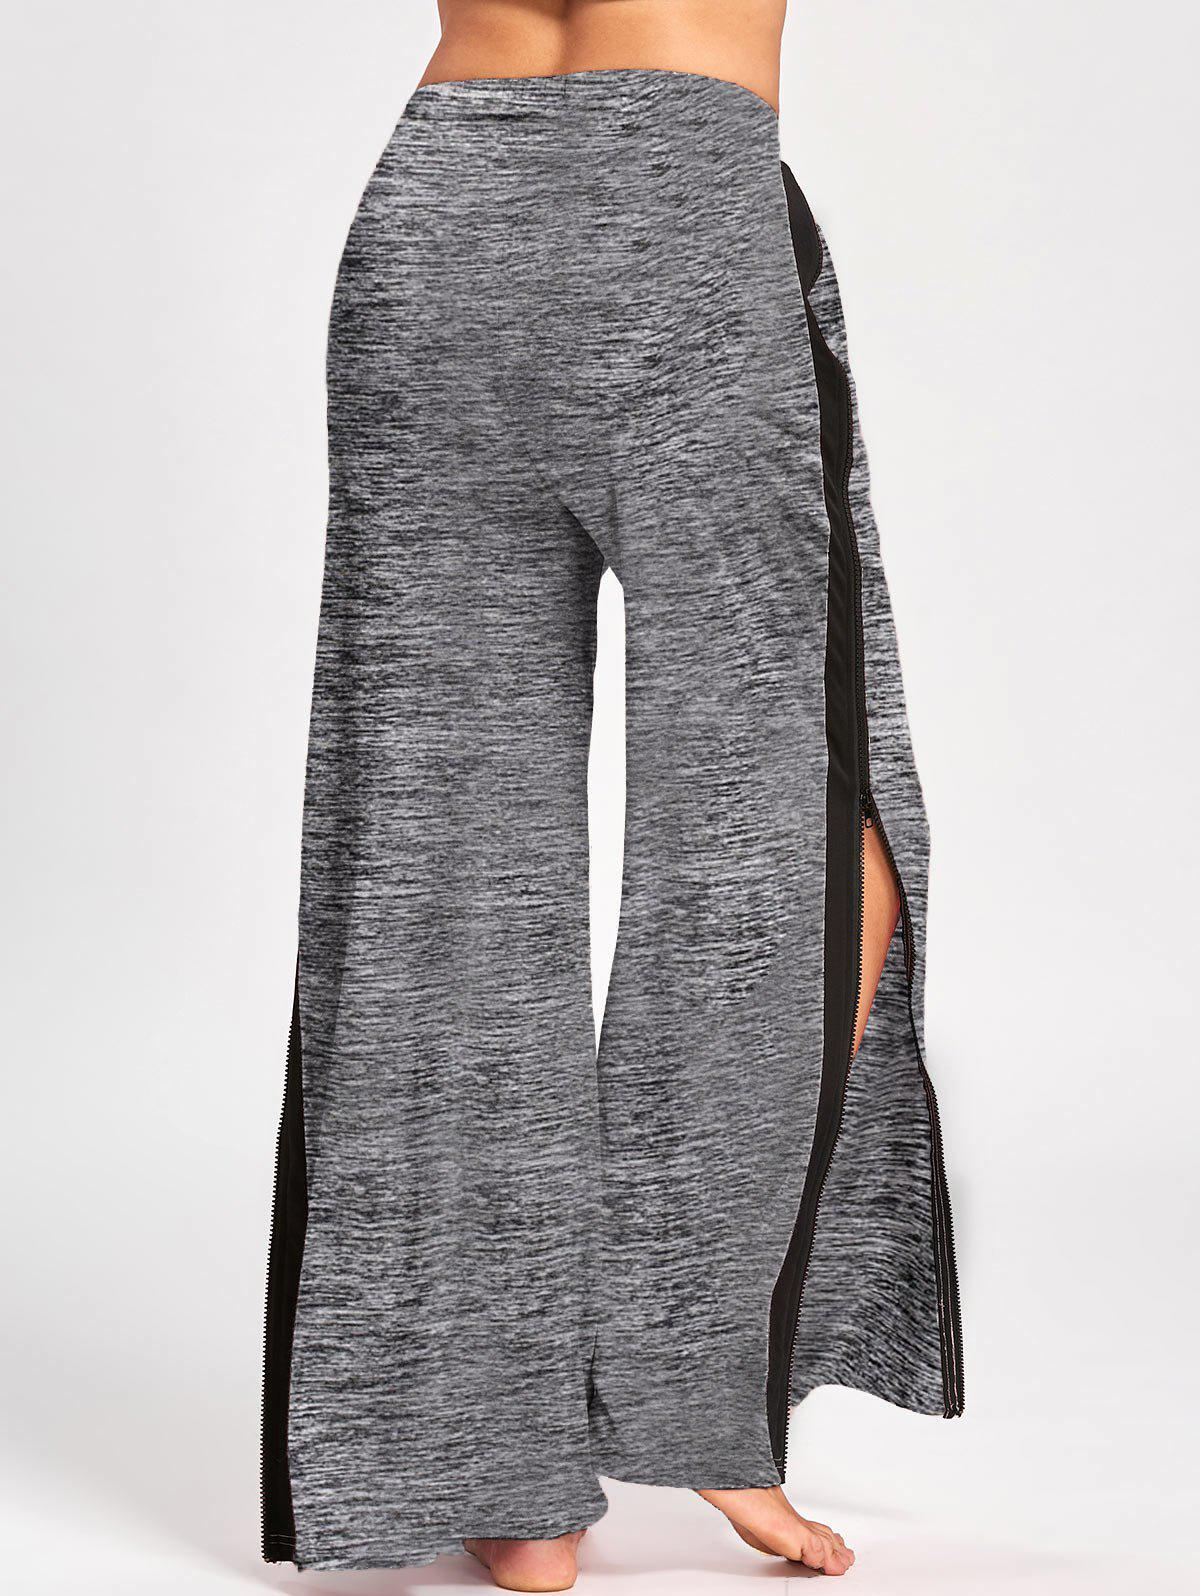 Side Slit Zip Up Wide Leg Pants - GRAY M